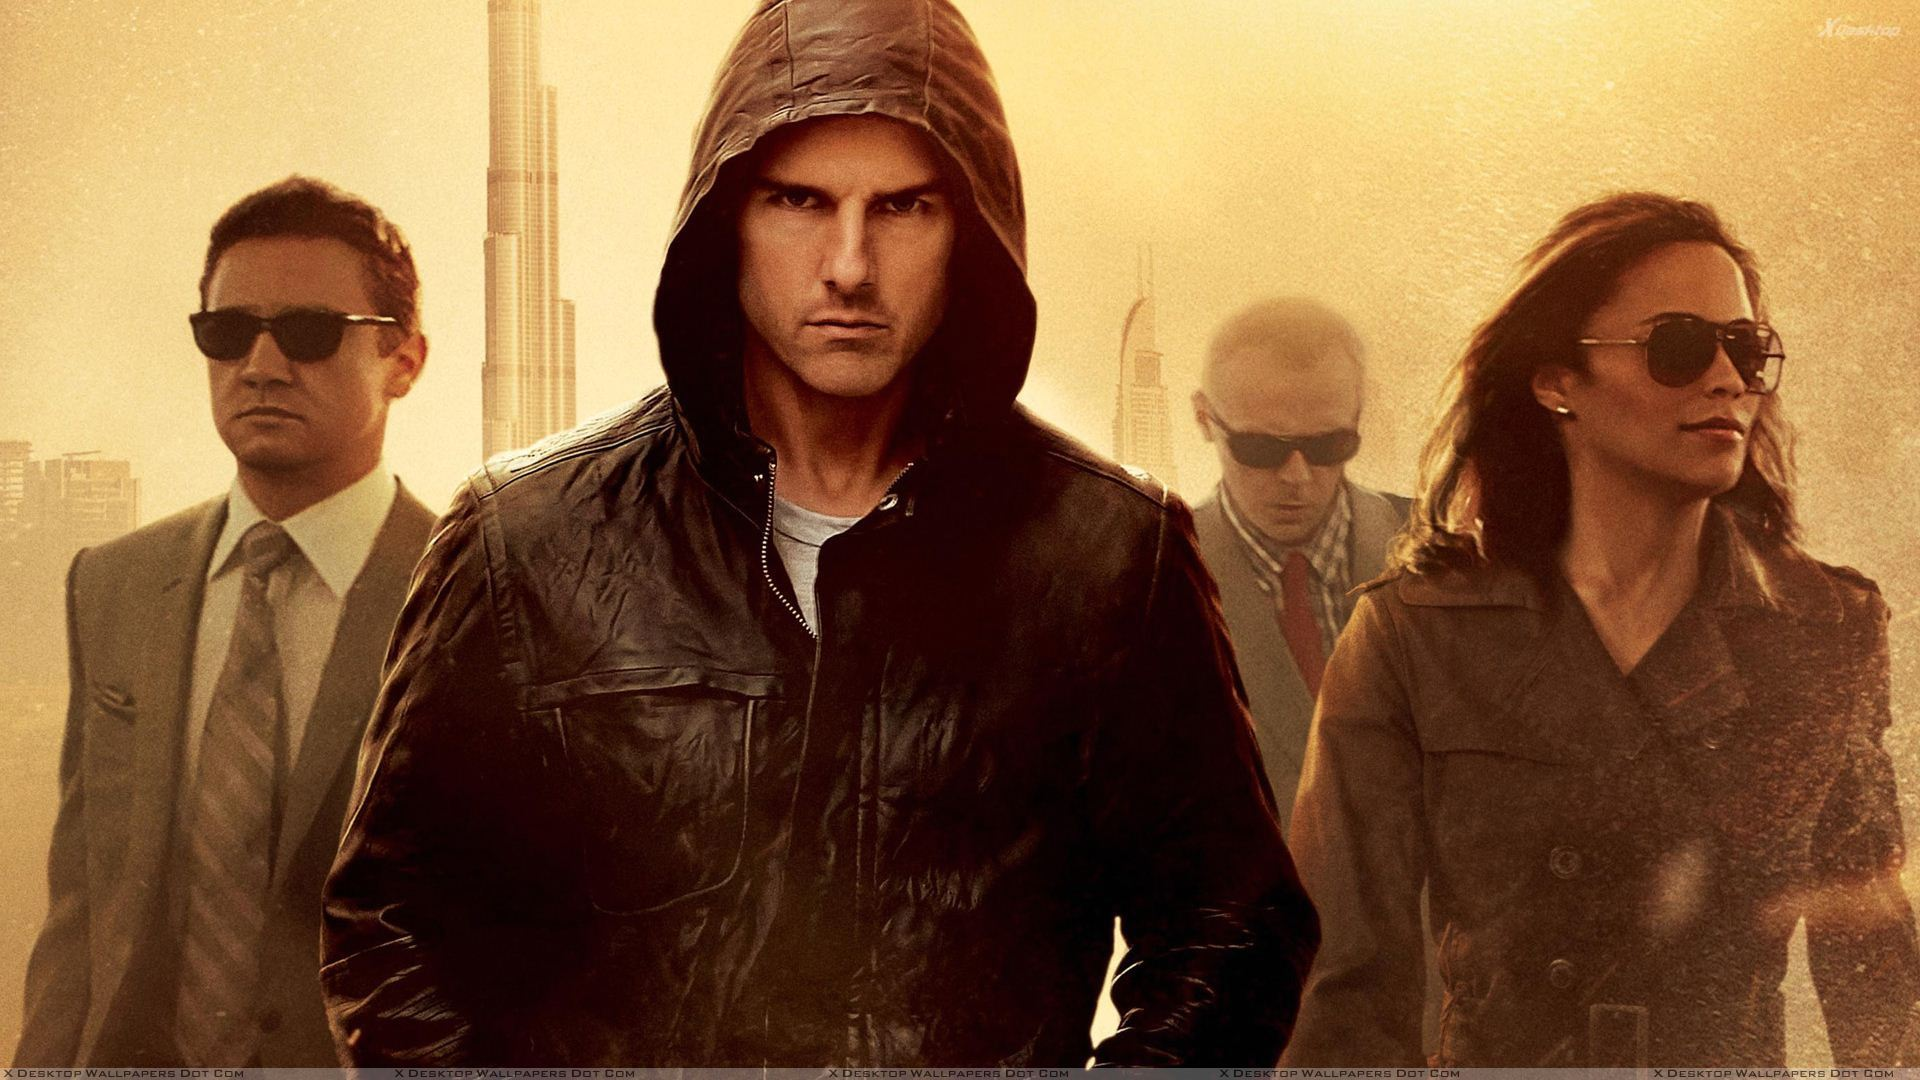 Mission: impossible ghost protocol wallpaper #10029485.